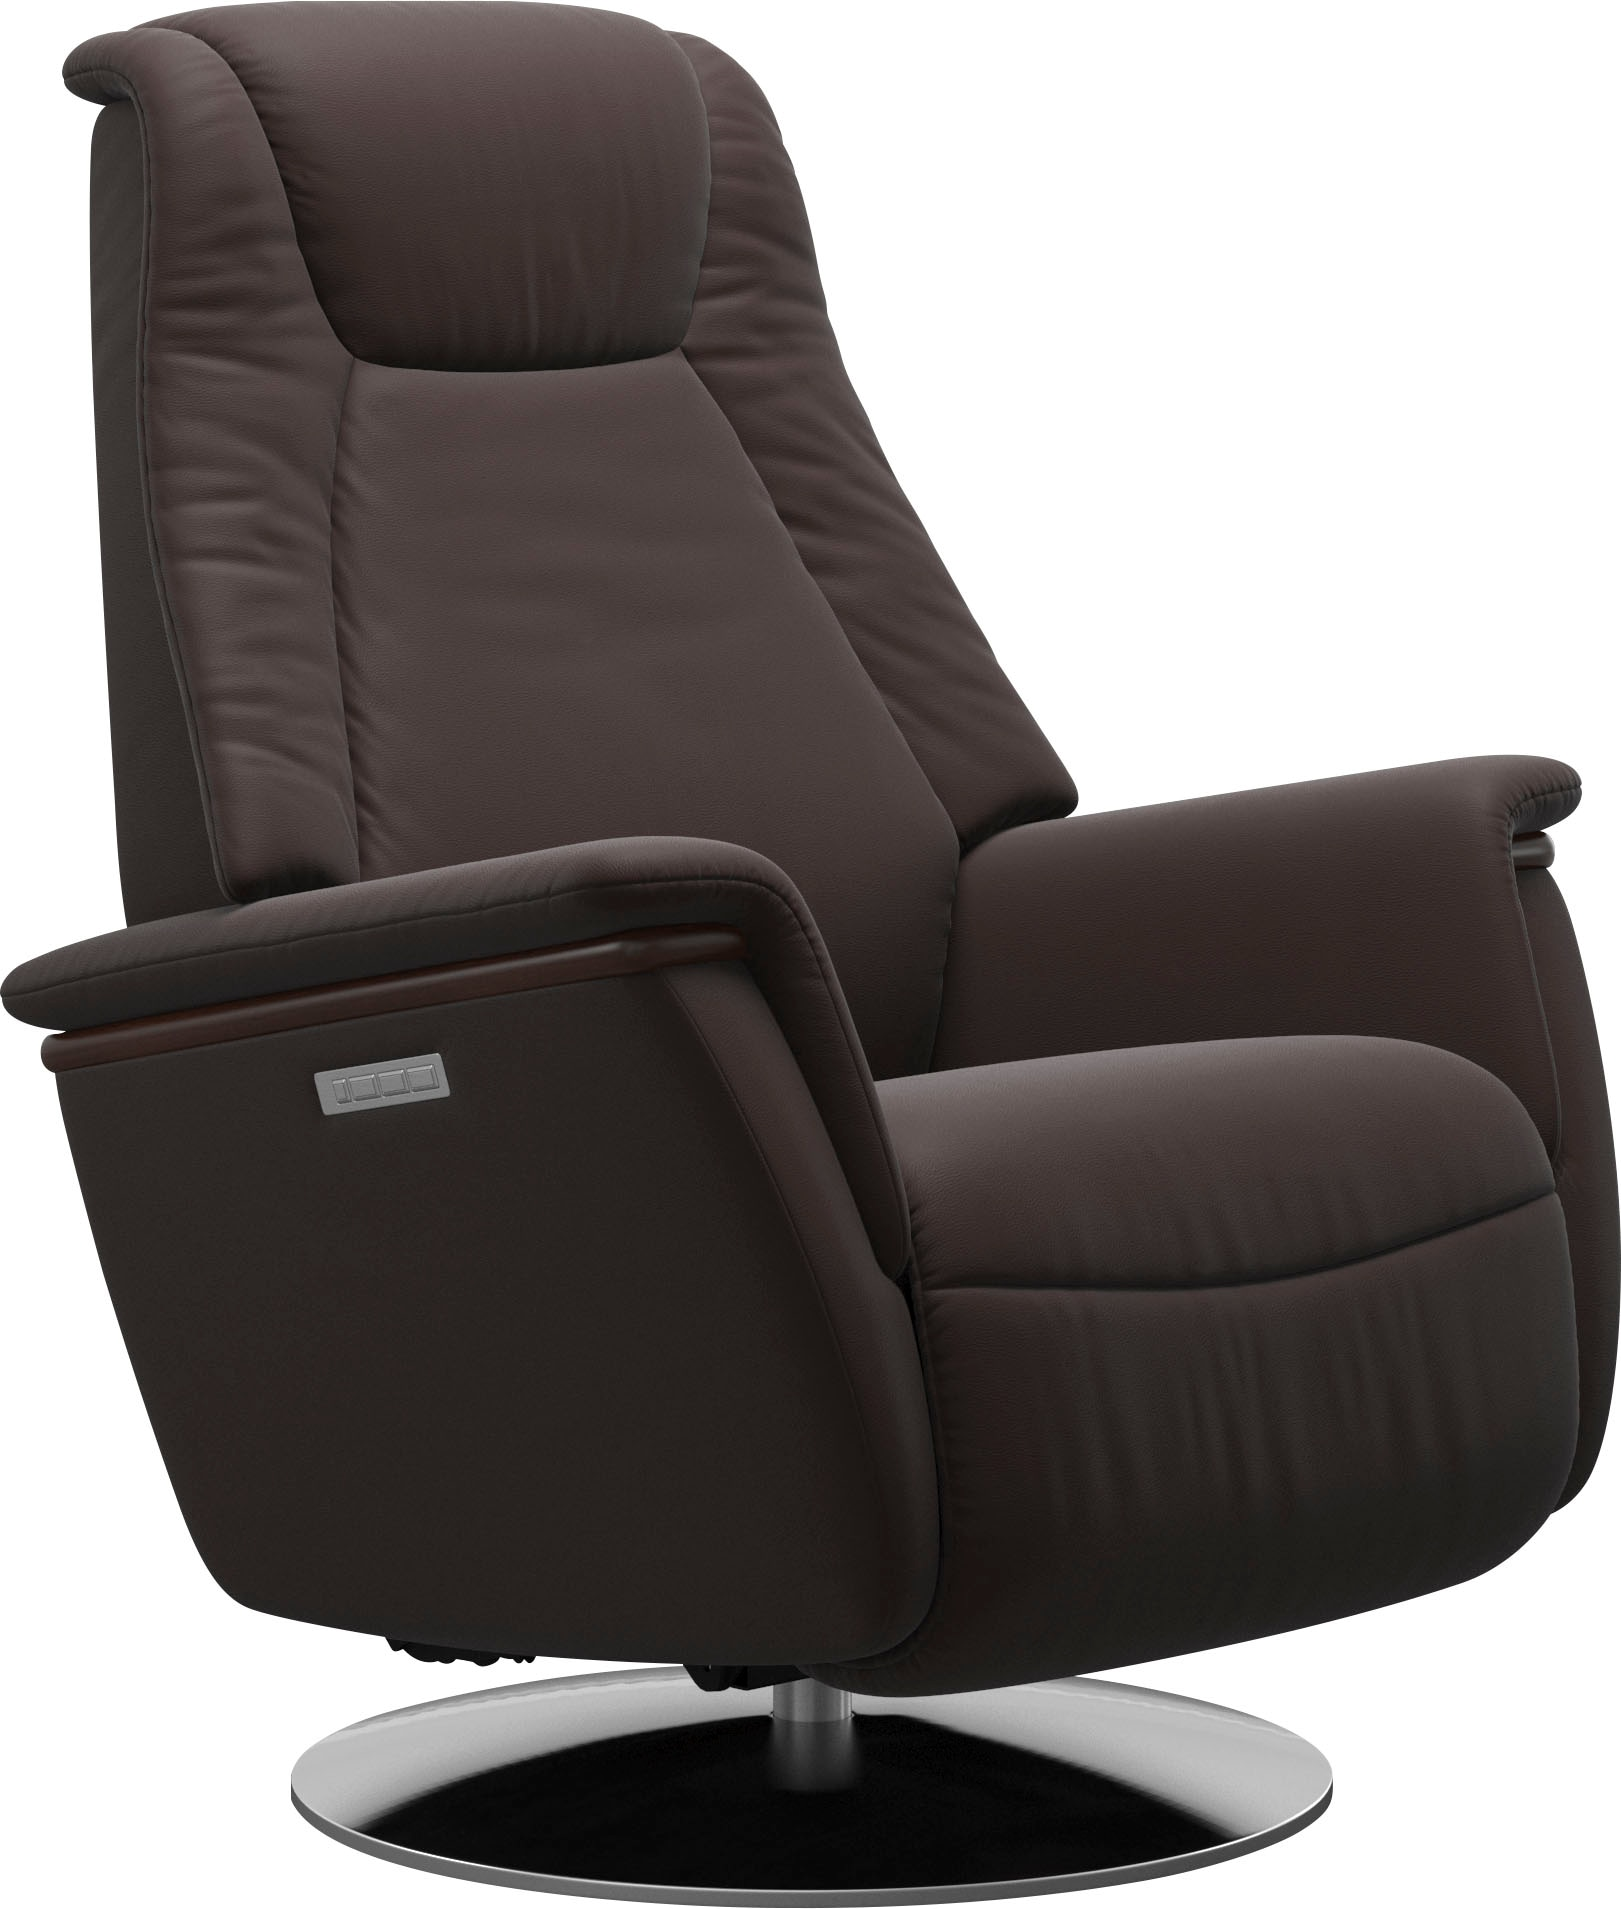 Stressless Relaxsessel Max Inspirierende Highlights Otto